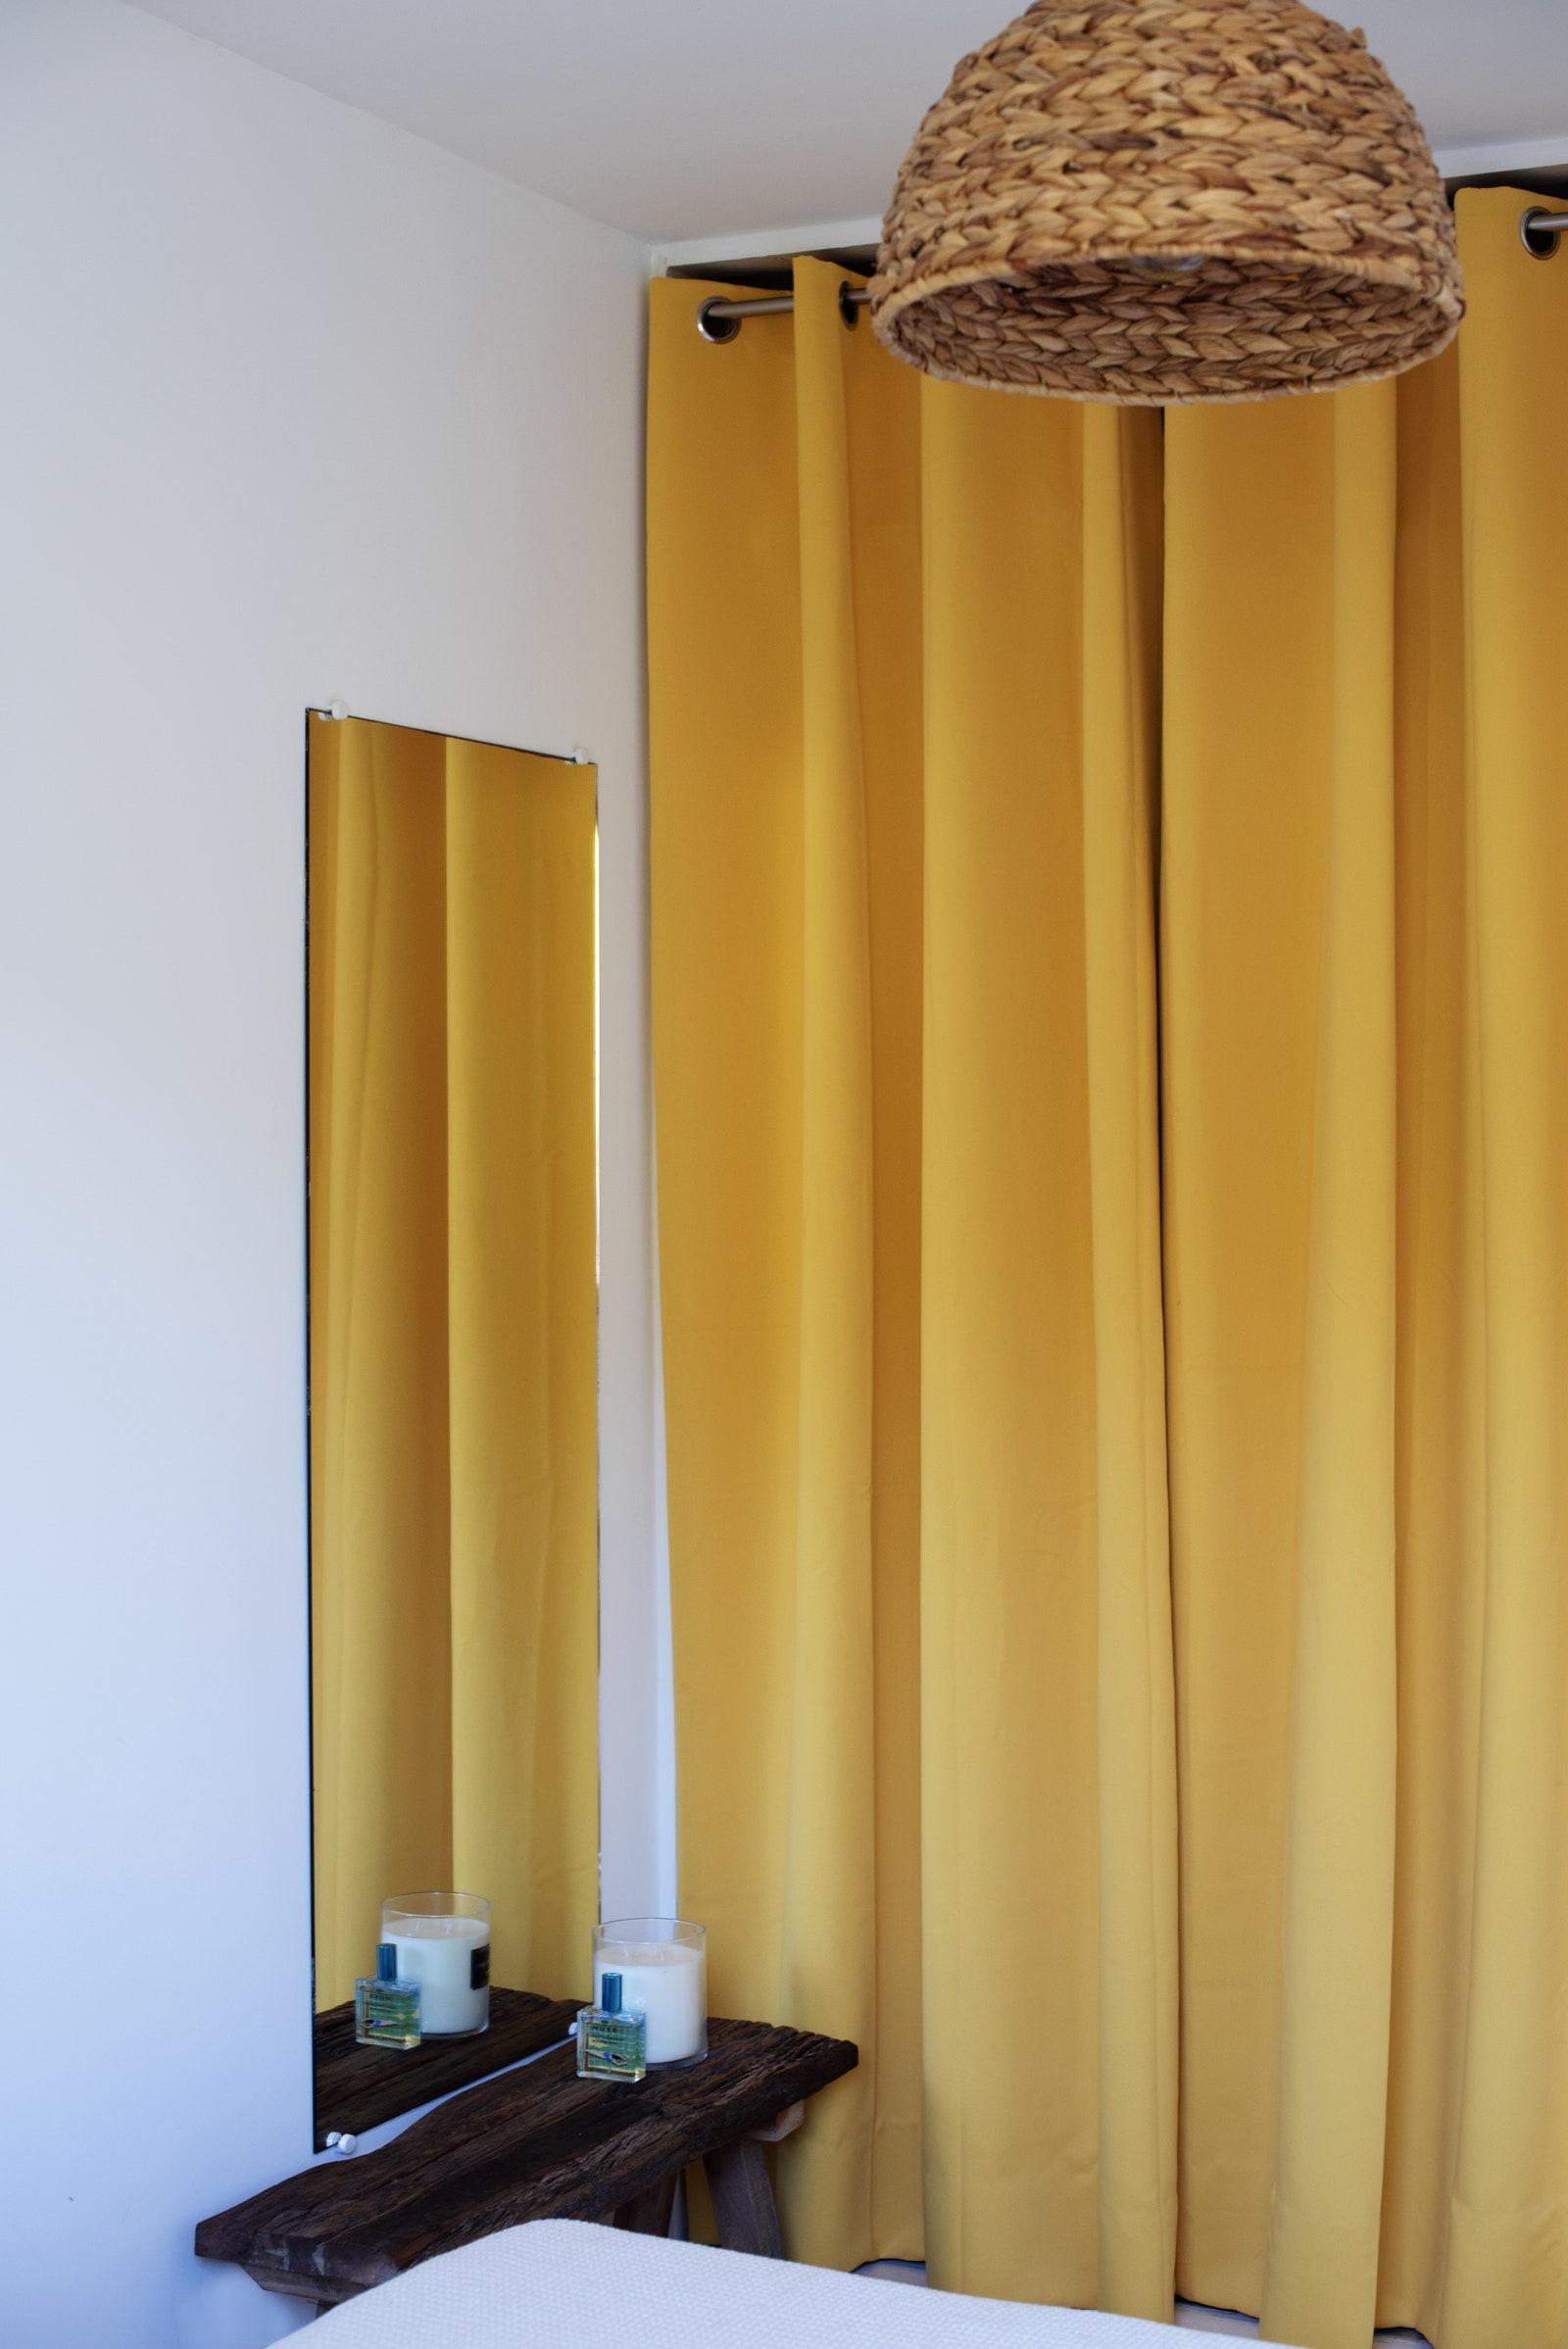 In the bedroom, raw simplicity is awakened by large yellow curtains and a woven straw pendant light.